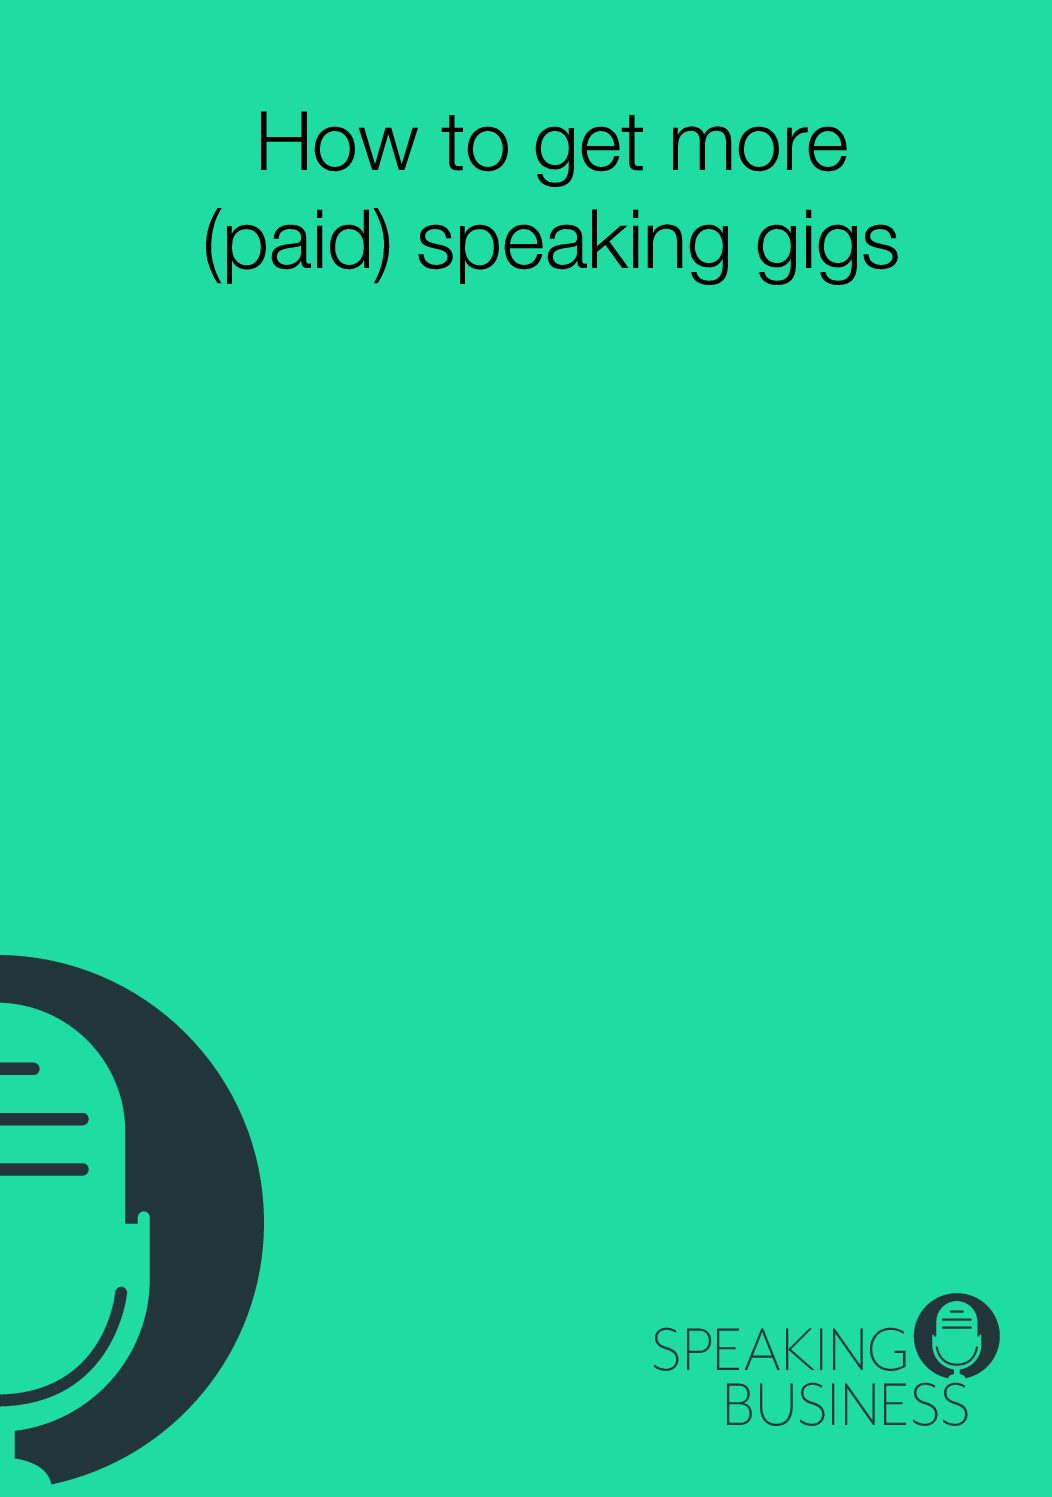 How to get more (paid) speaking gigs